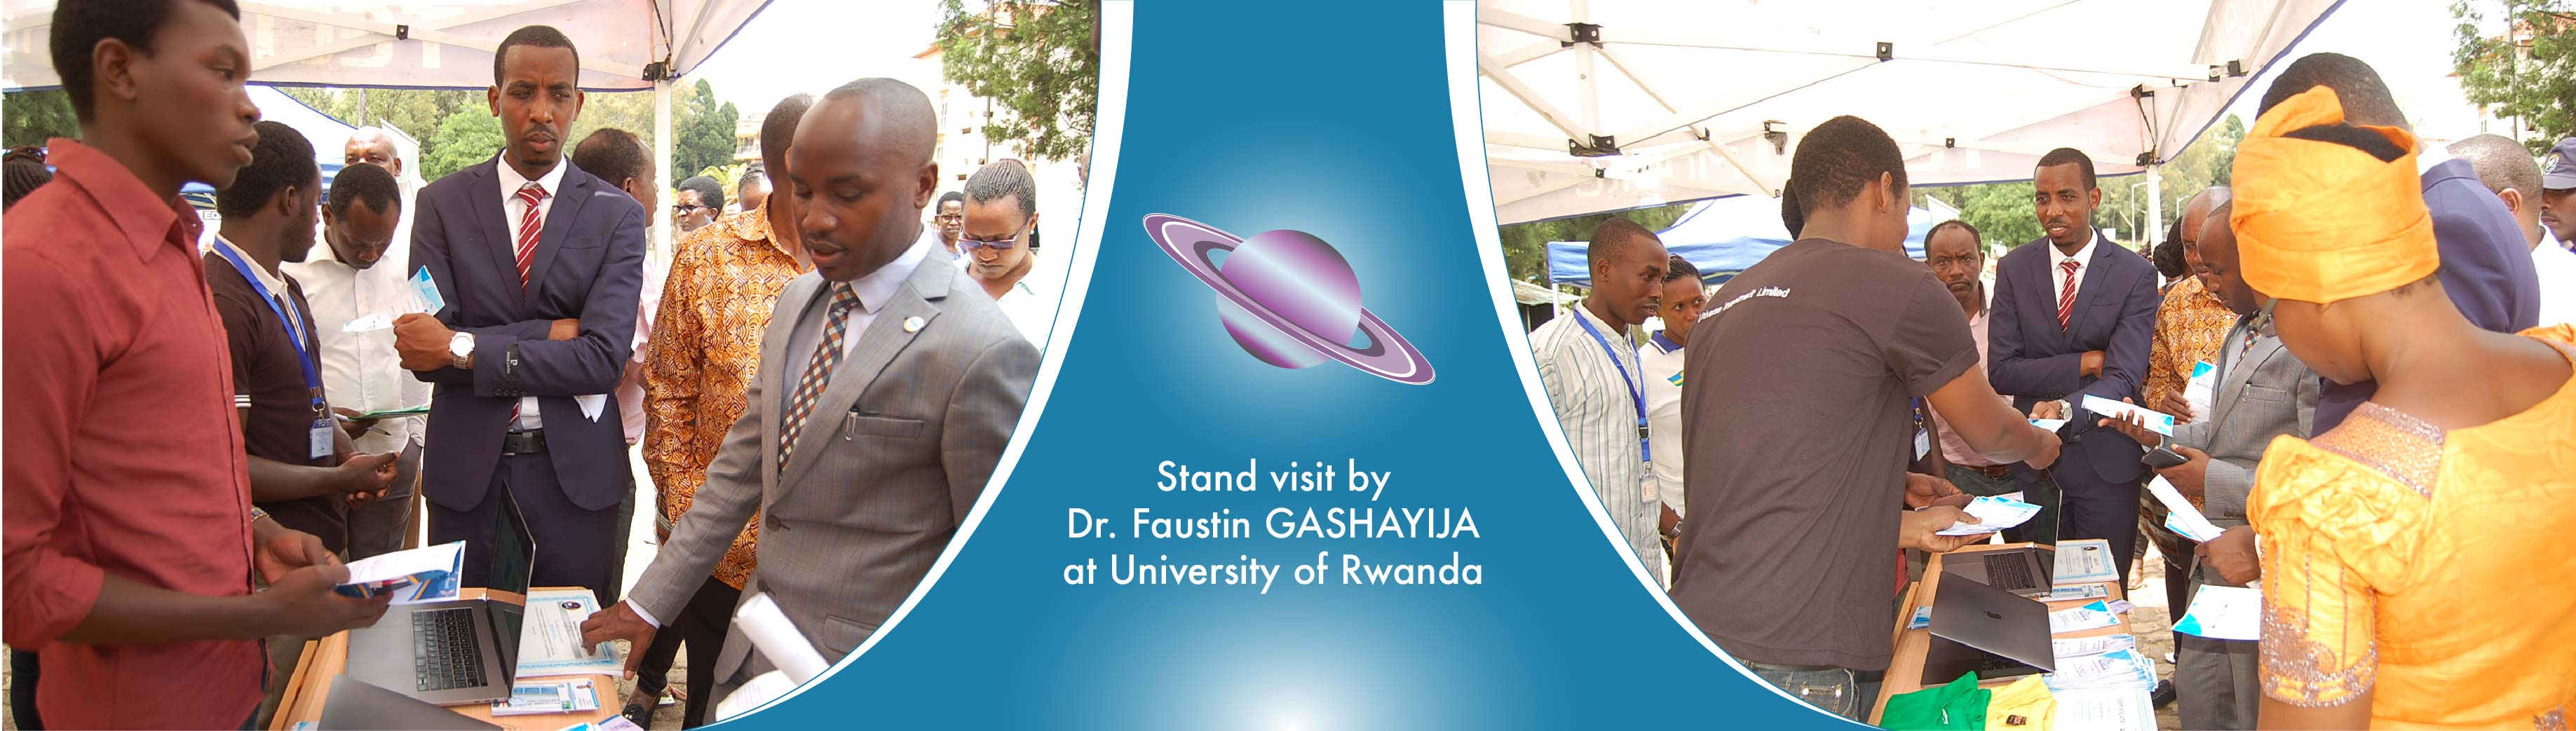 """Our stand at University of Rwanda"""